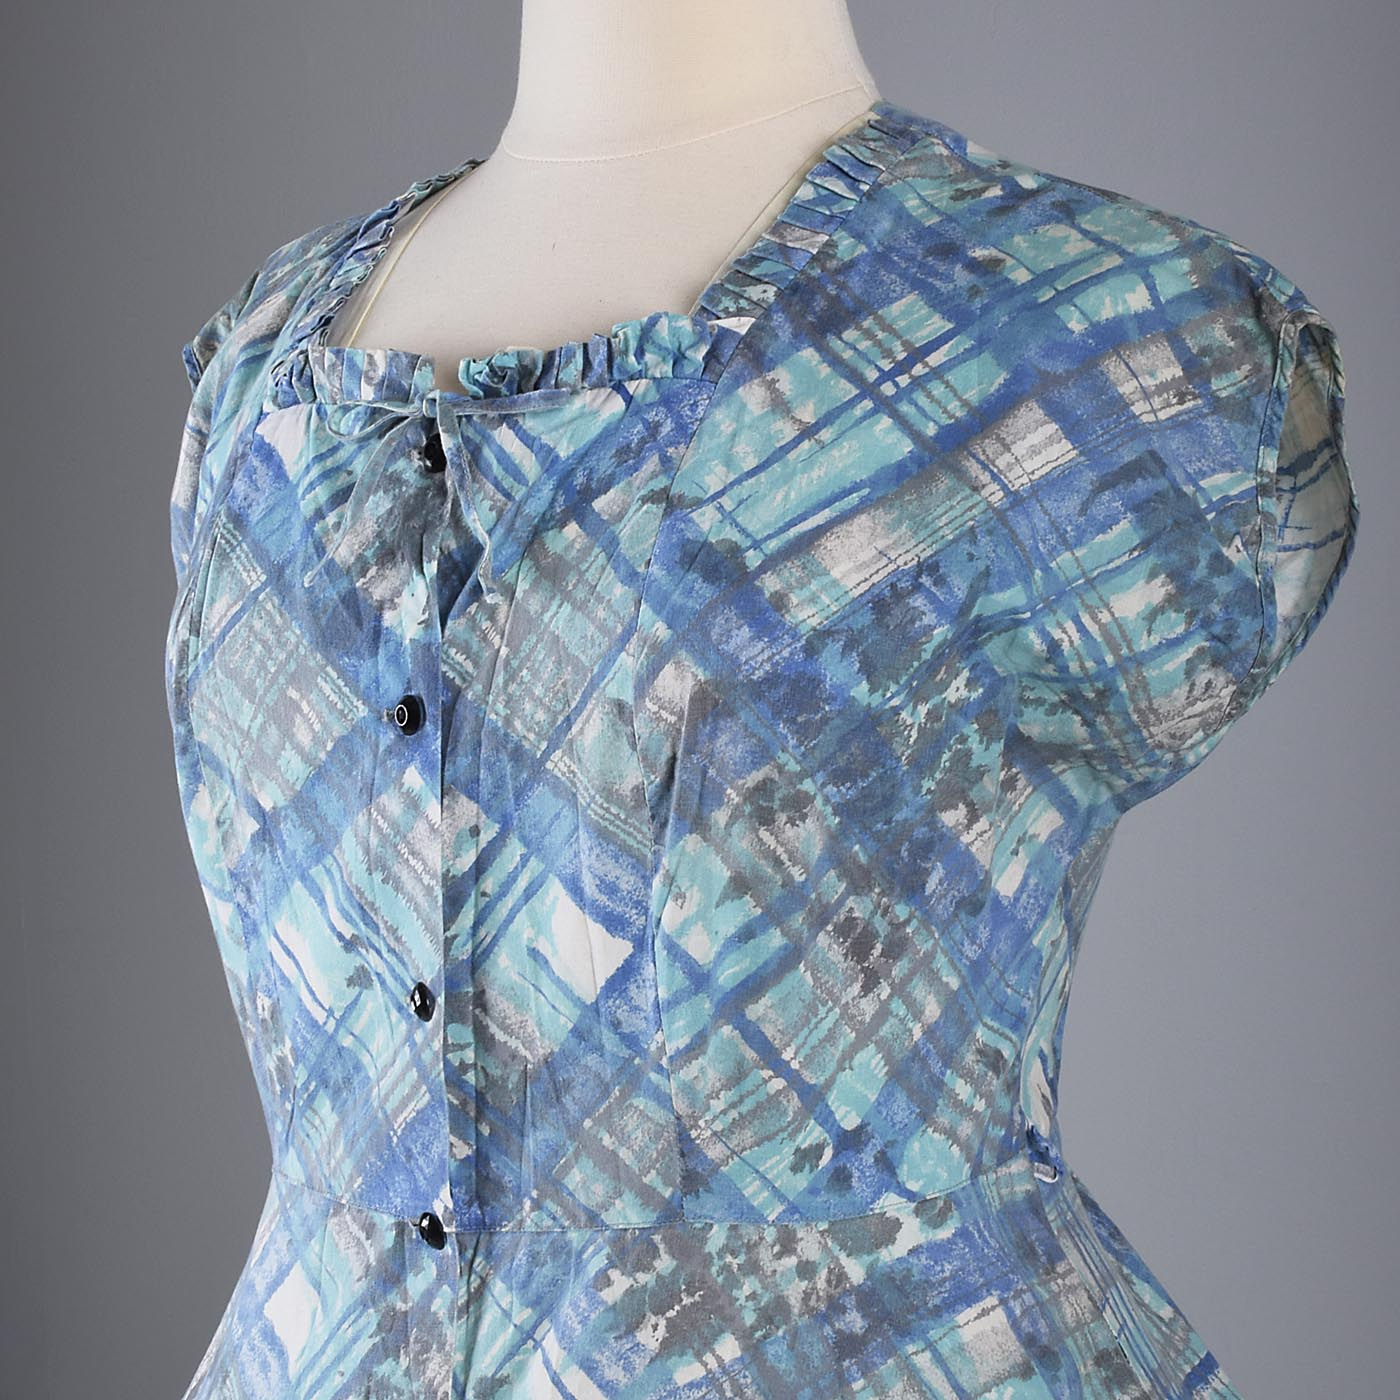 1950s Cotton Day Dress with Plaid Print